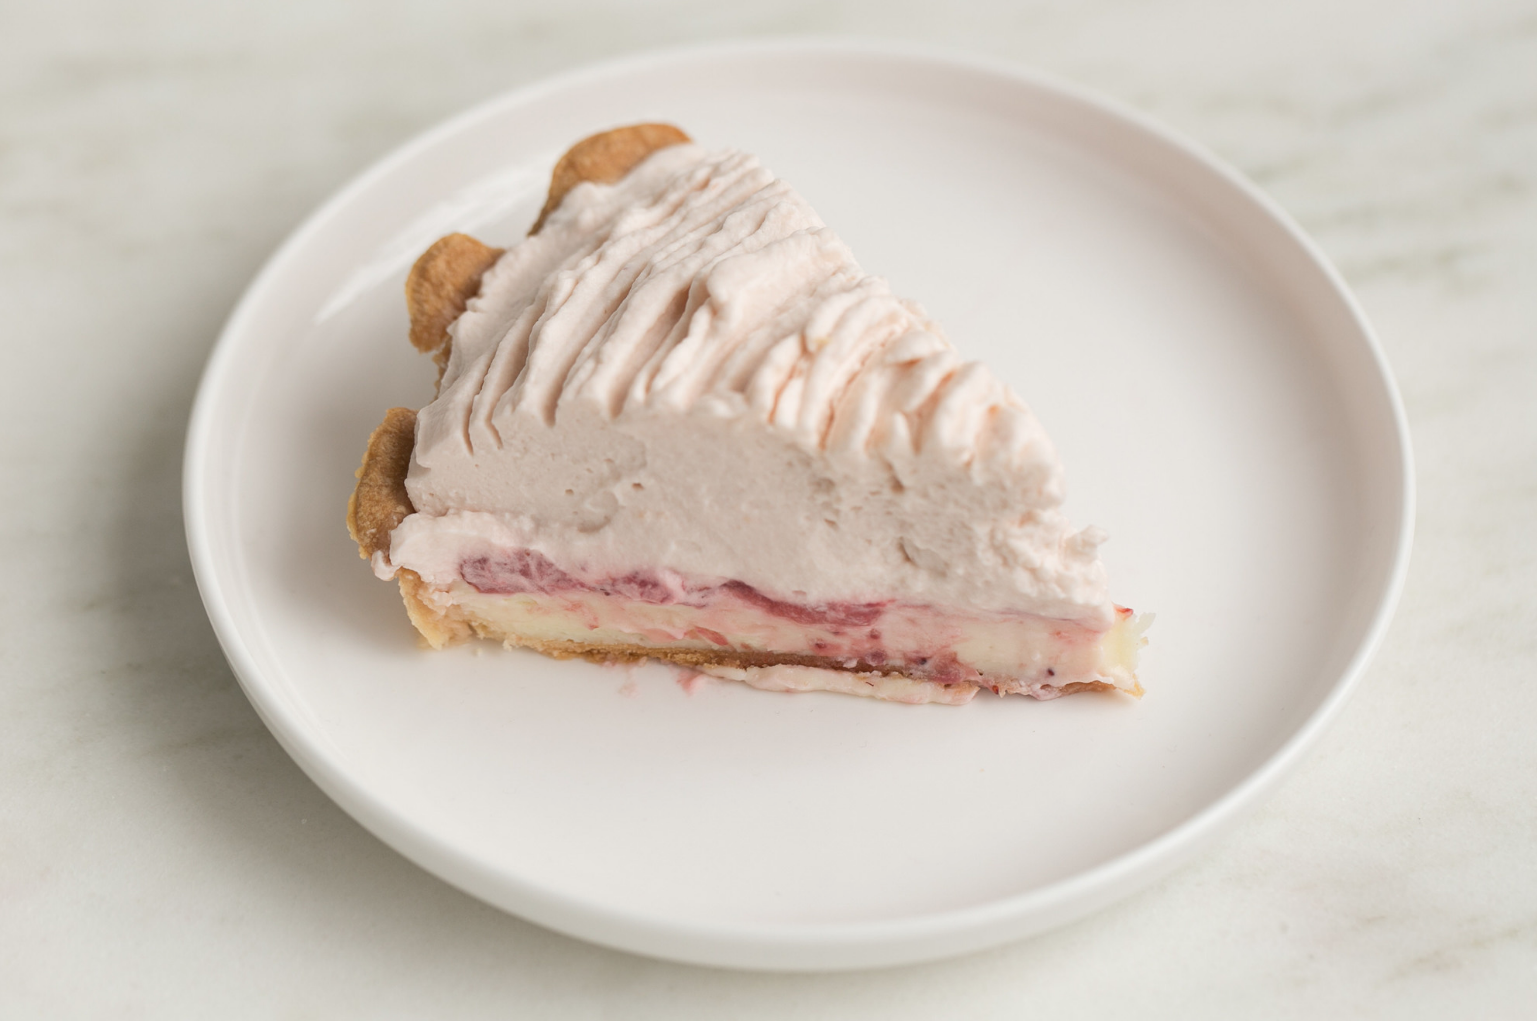 White Chocolate Strawberry - Say hello to this fluffy cloud of strawberry whipped cream with a foundation of dense white chocolate cheesecake.These delicious layers meet in the middle with a sweet spread of baked strawberries. See what Food Network was talking about when they named this pie one of the Best Pies in America.